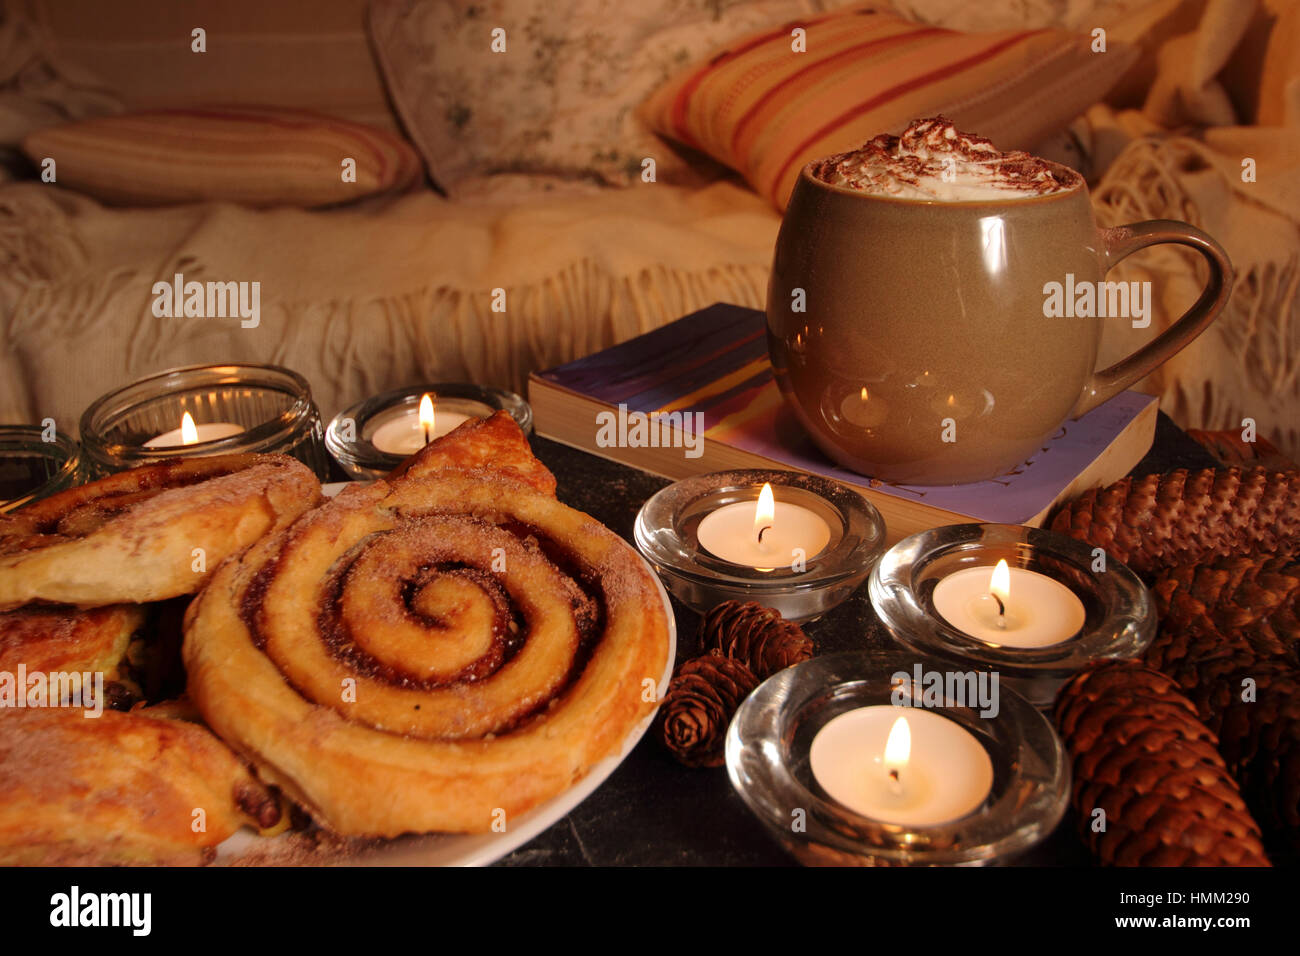 A cosy,candle lit corner in an English home inspired by the Danish concept of hygge with pastries, hot drink,a good - Stock Image